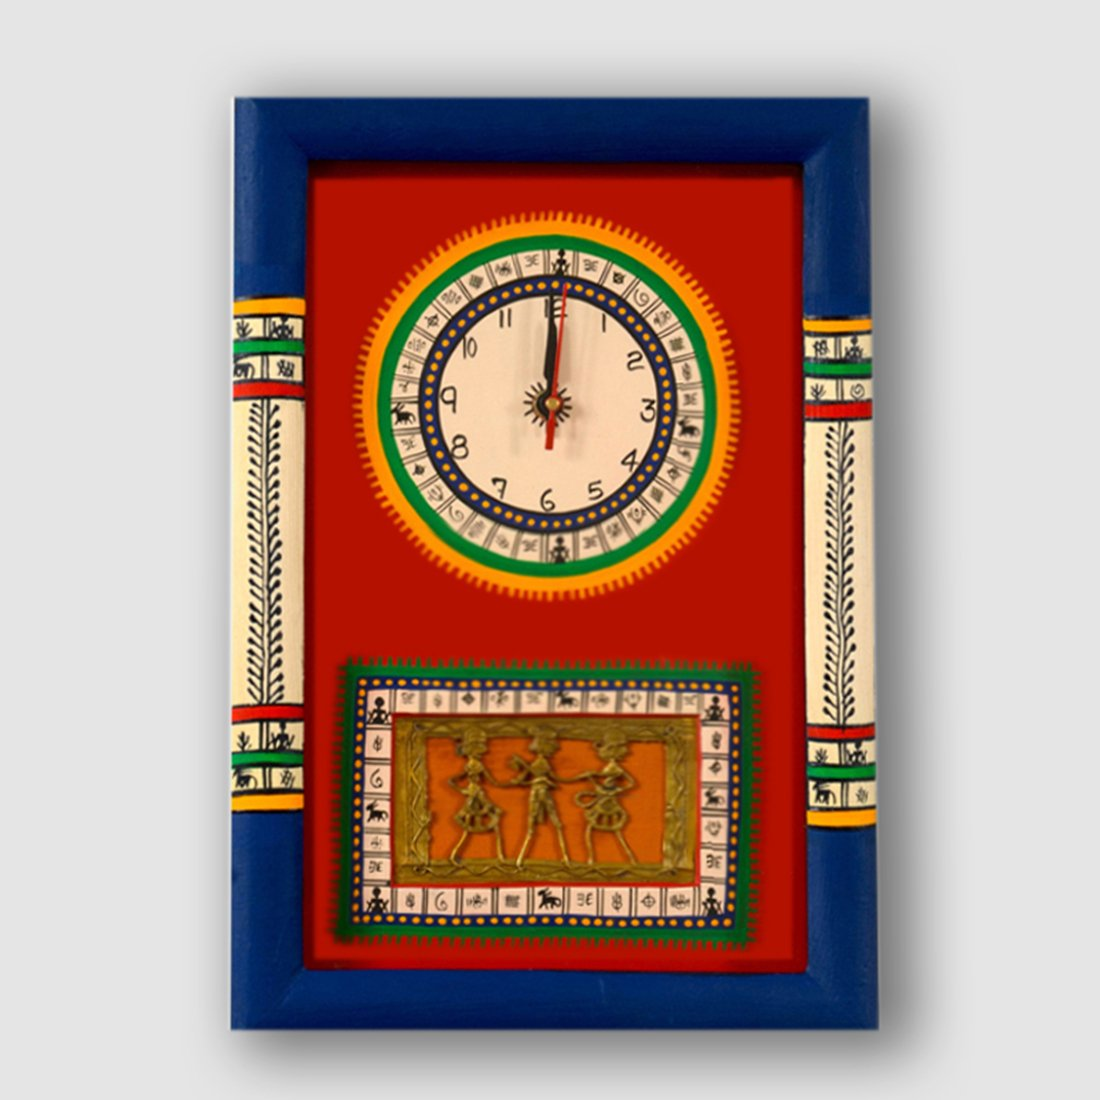 ExclusiveLane Warli Handpainted and Dhokra Work Clock 1510 Inch Red - Decorative Wall Clocks For Bedroom Clocks For Kids Wall Décor Gift Items Wall Decorations For Living Room